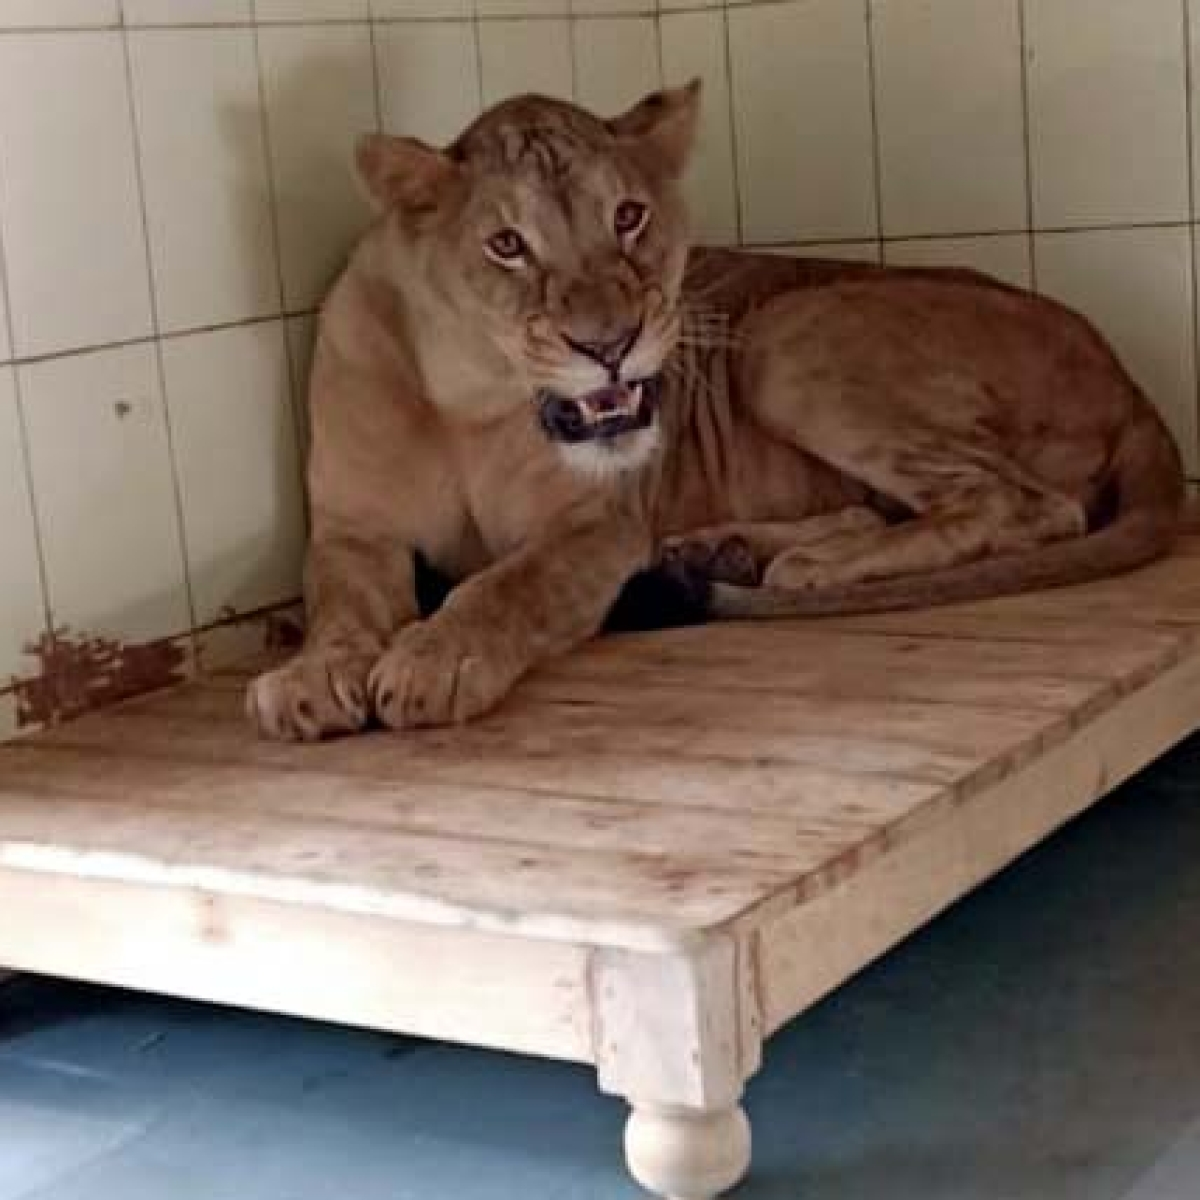 Bhopal: Pair of lion brought from CG to be kept in quarantine for 15 more days